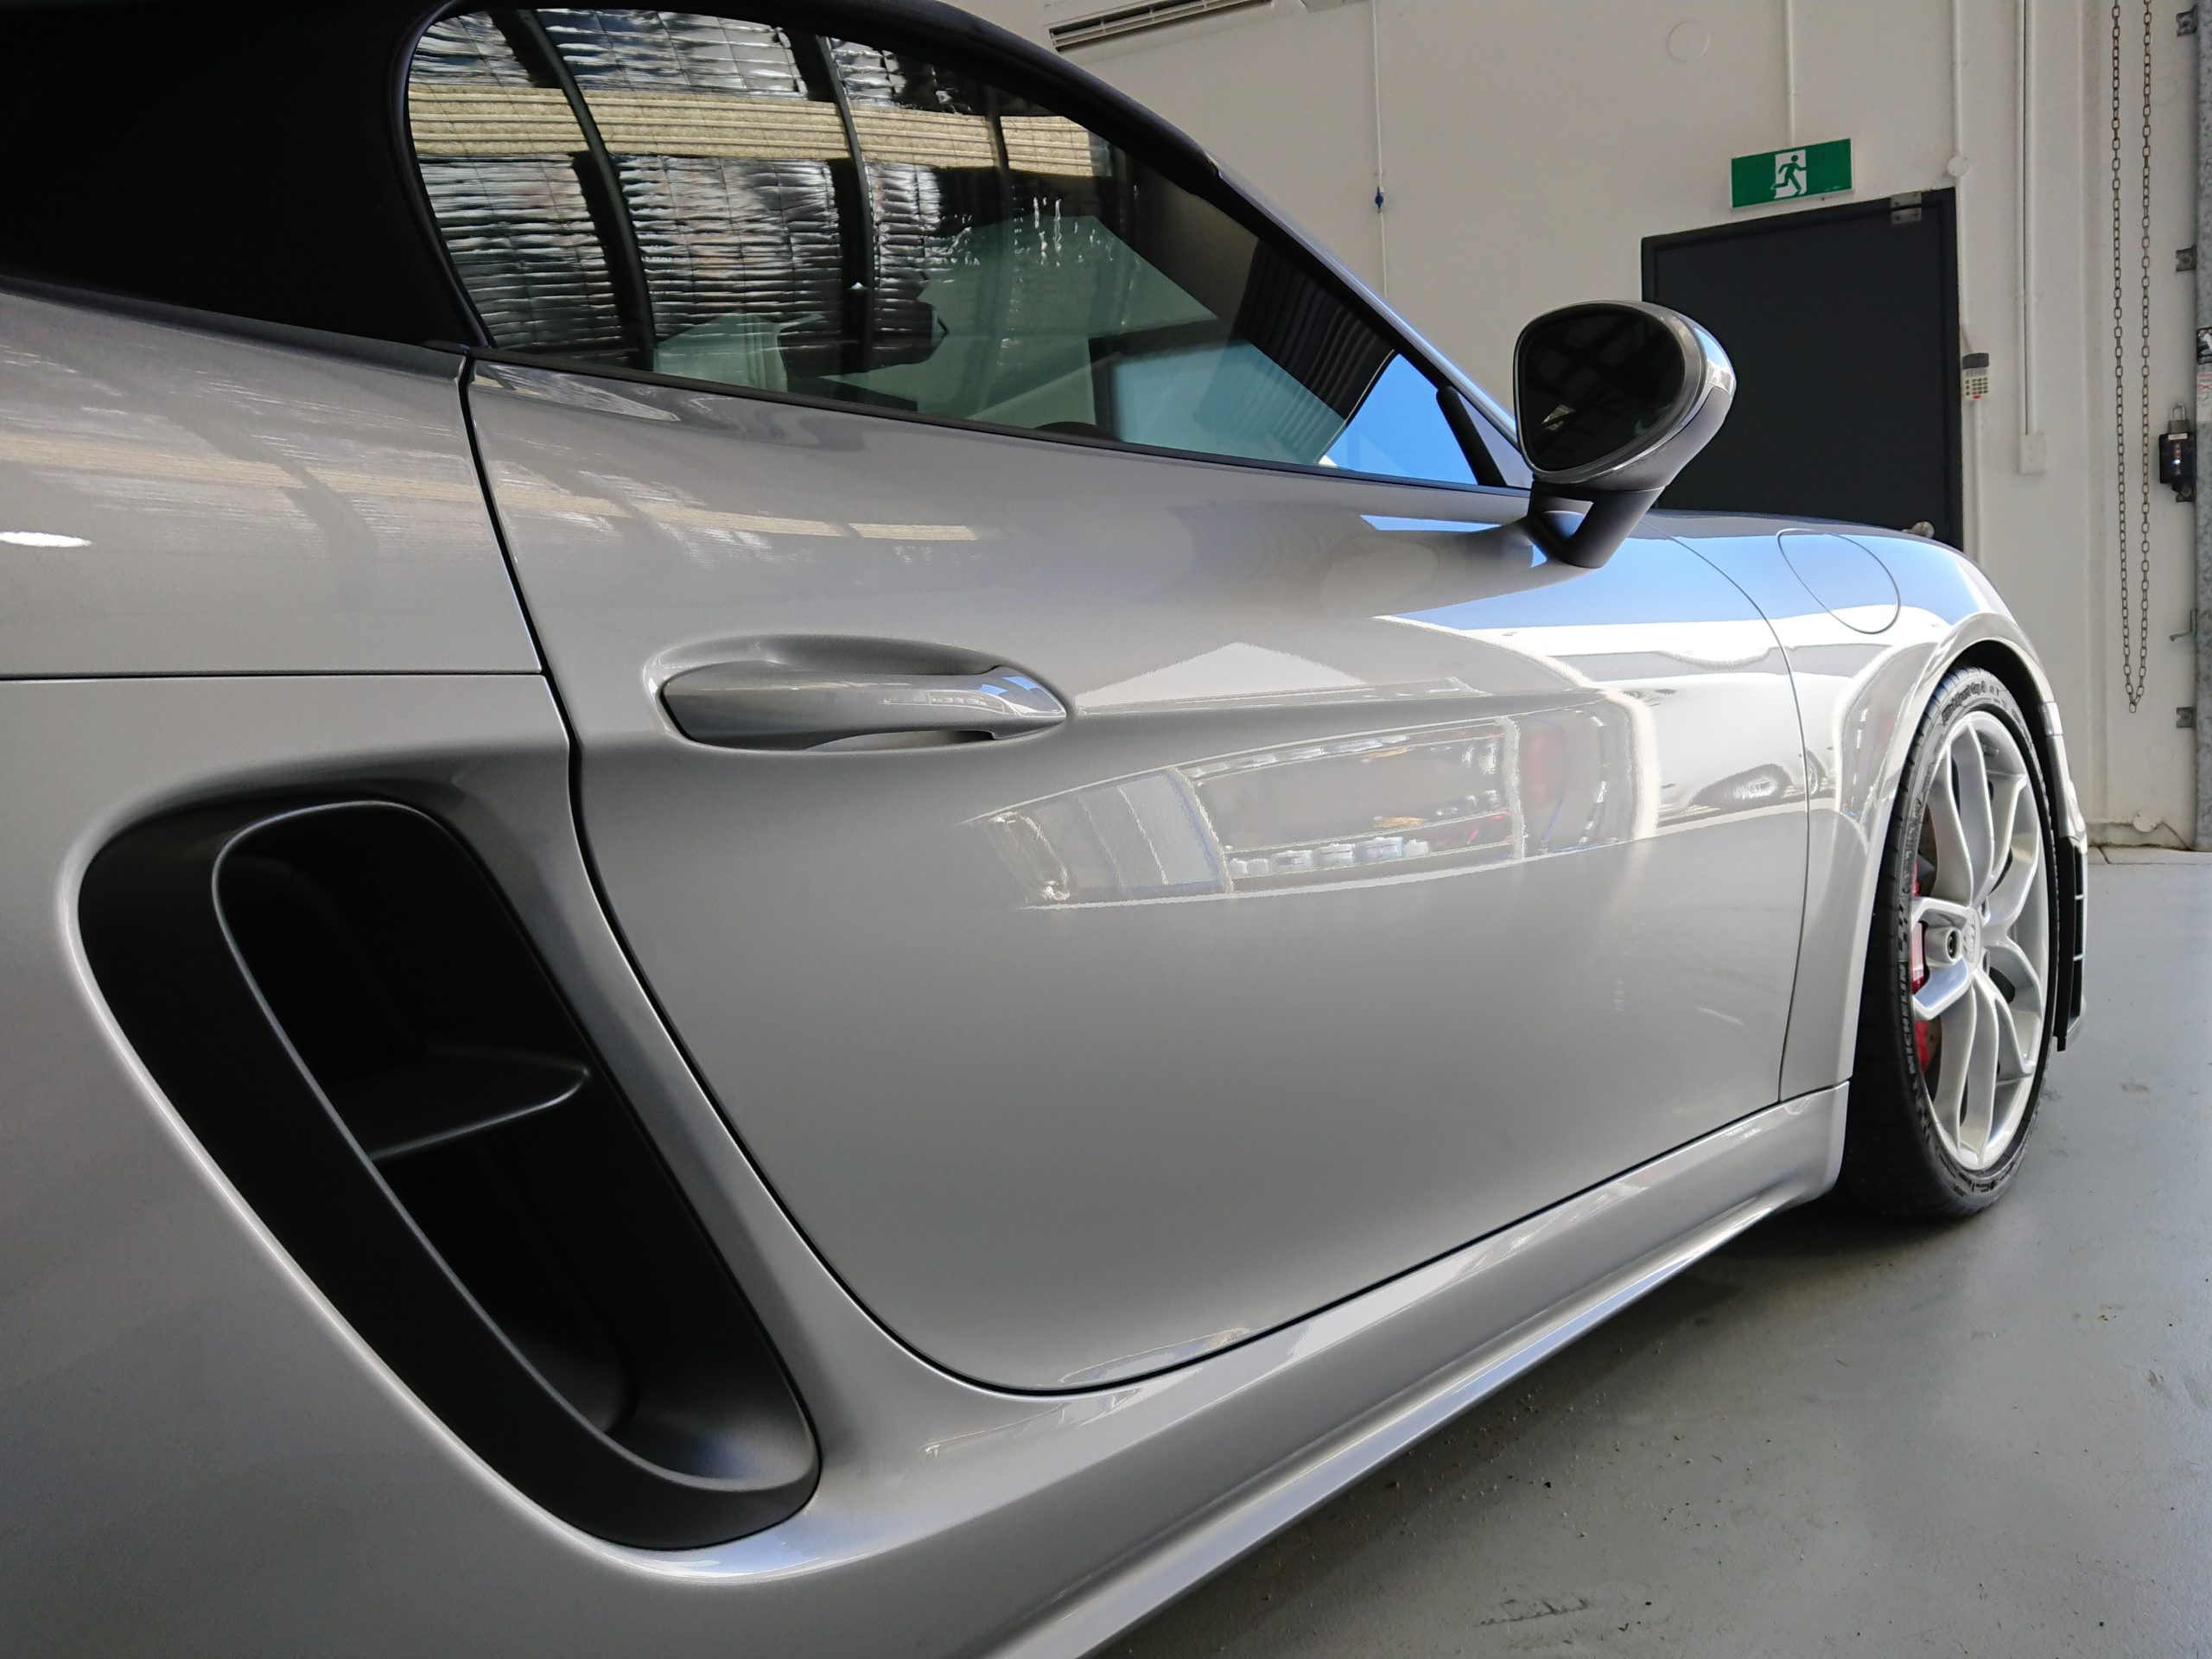 Porsche 718 Spyder protected with paint protection film (PPF) and 3M Car Window Tinting